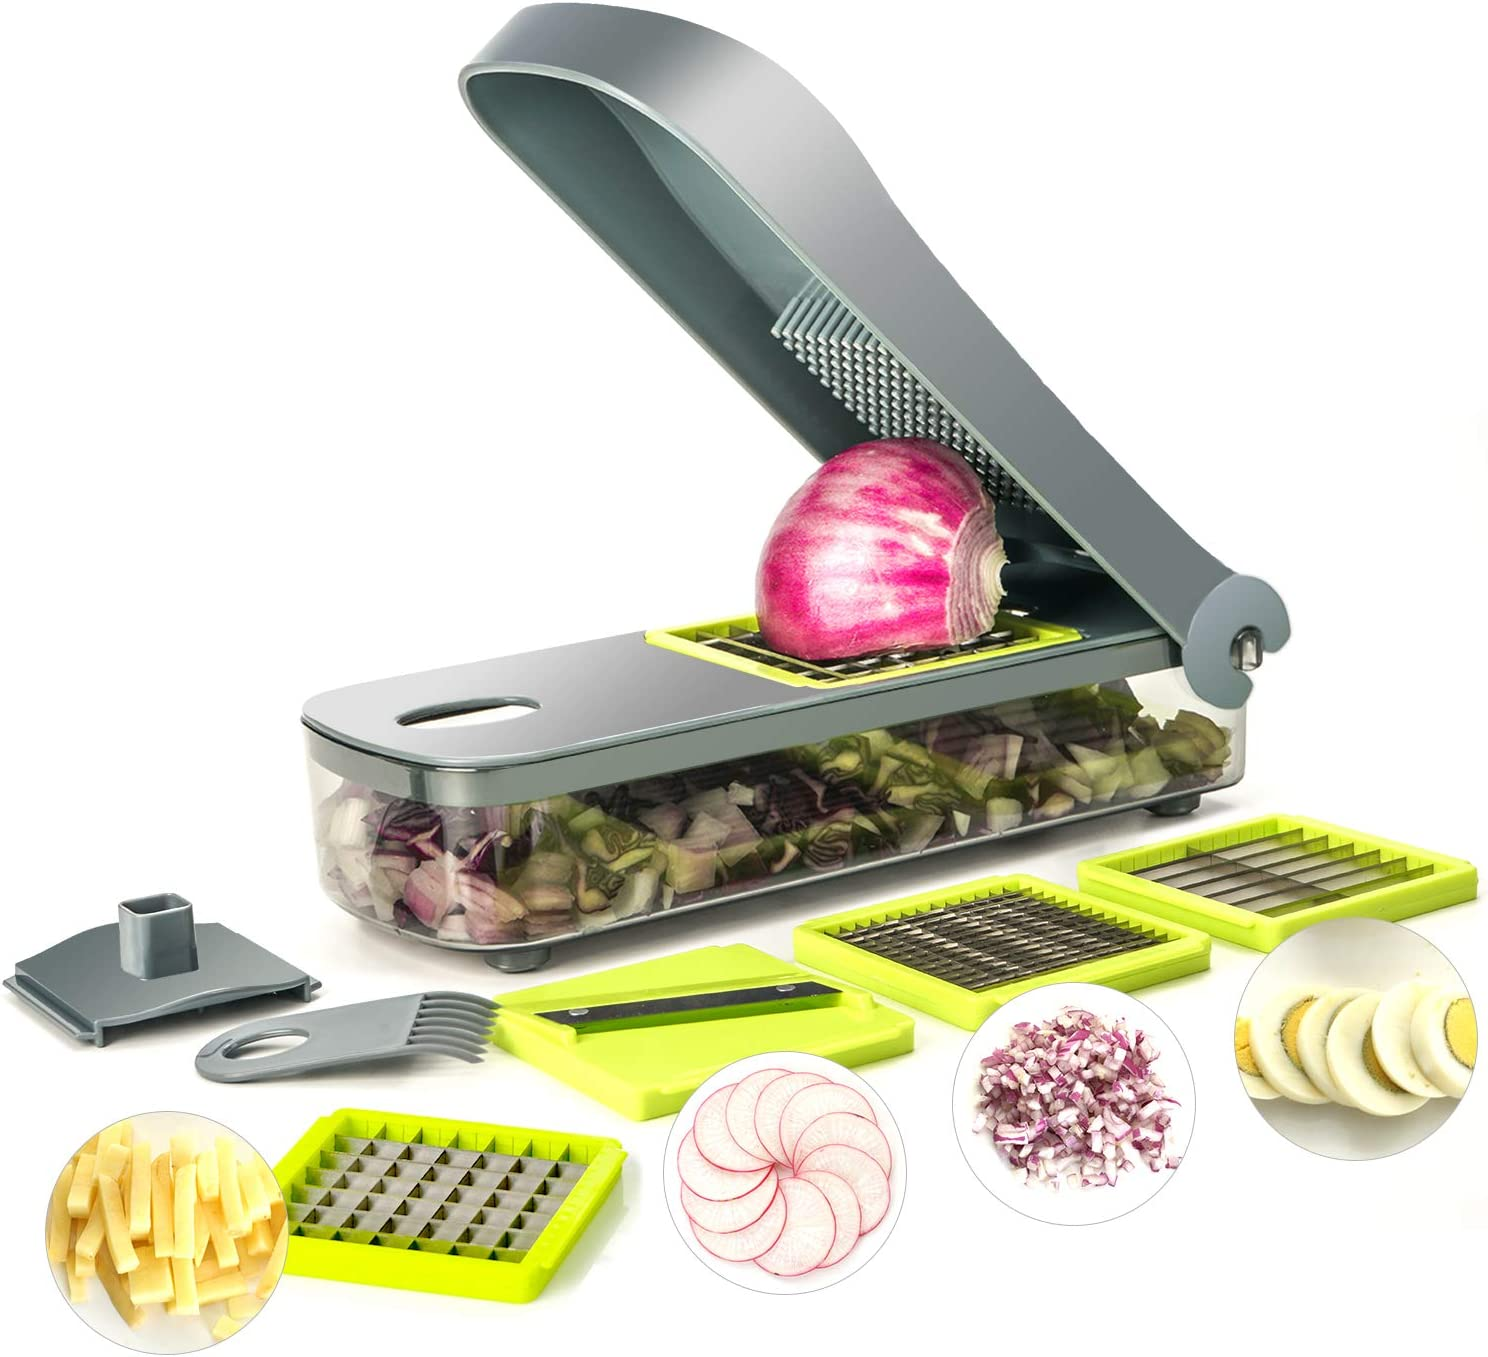 kalokelvin 4 in 1 Vegetable Food Onion Chopper Mandoline Slicer Large Containe -4 Cup